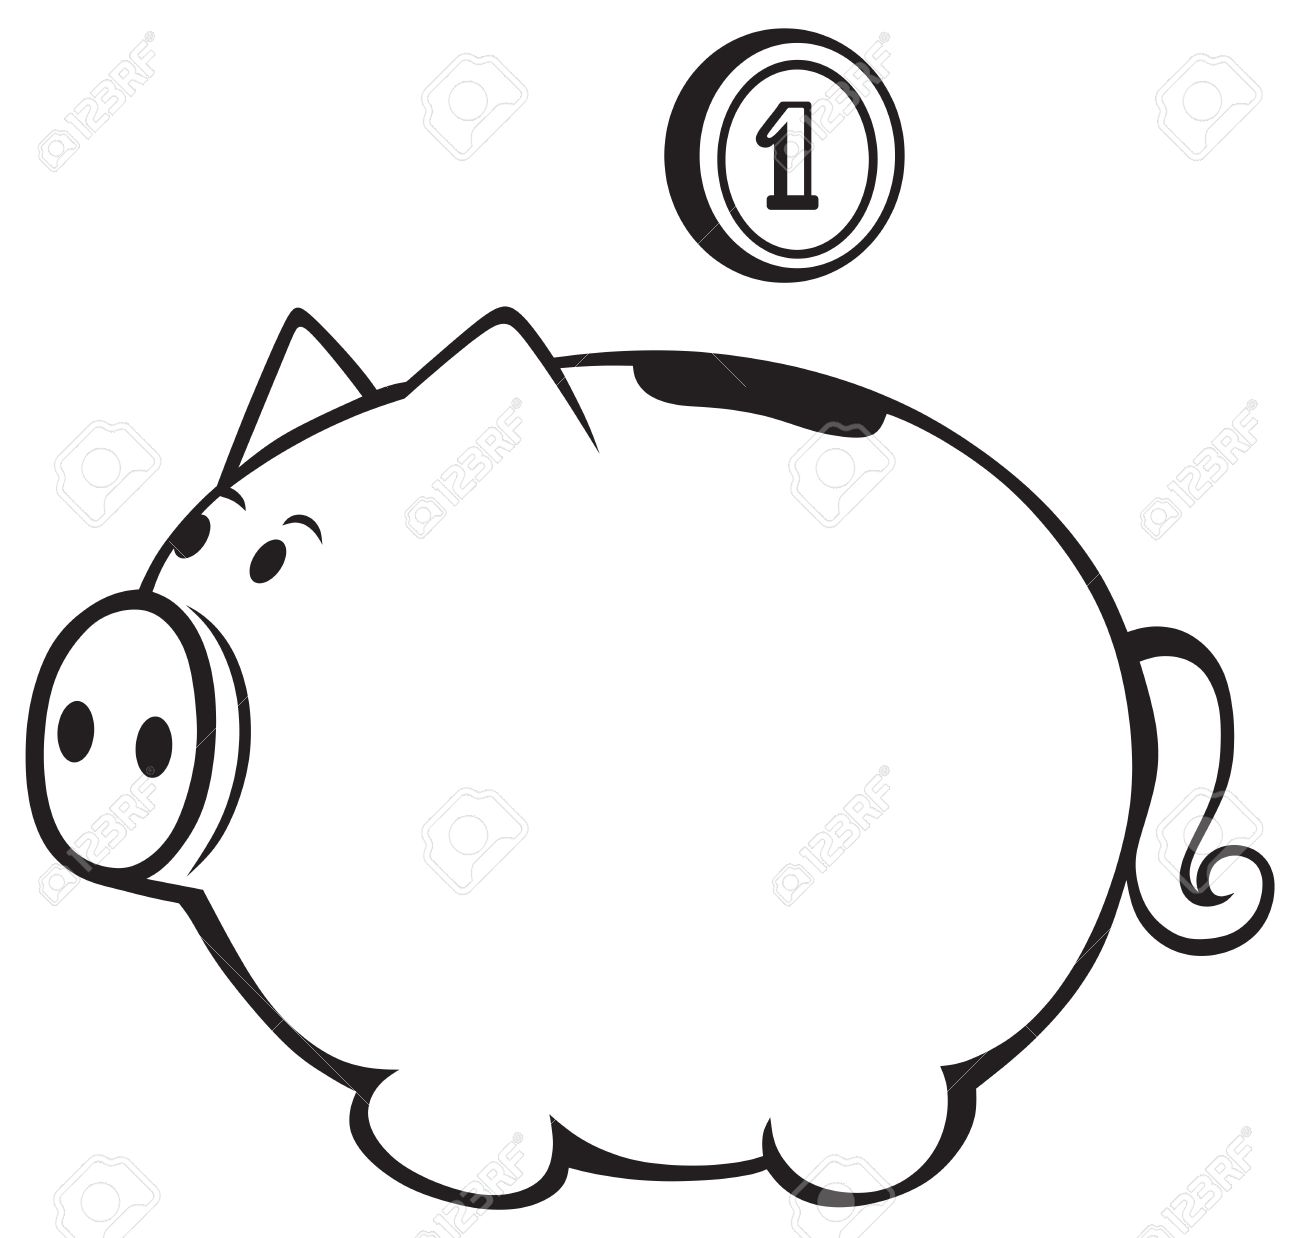 Piggy bank clipart black and white 5 » Clipart Station.